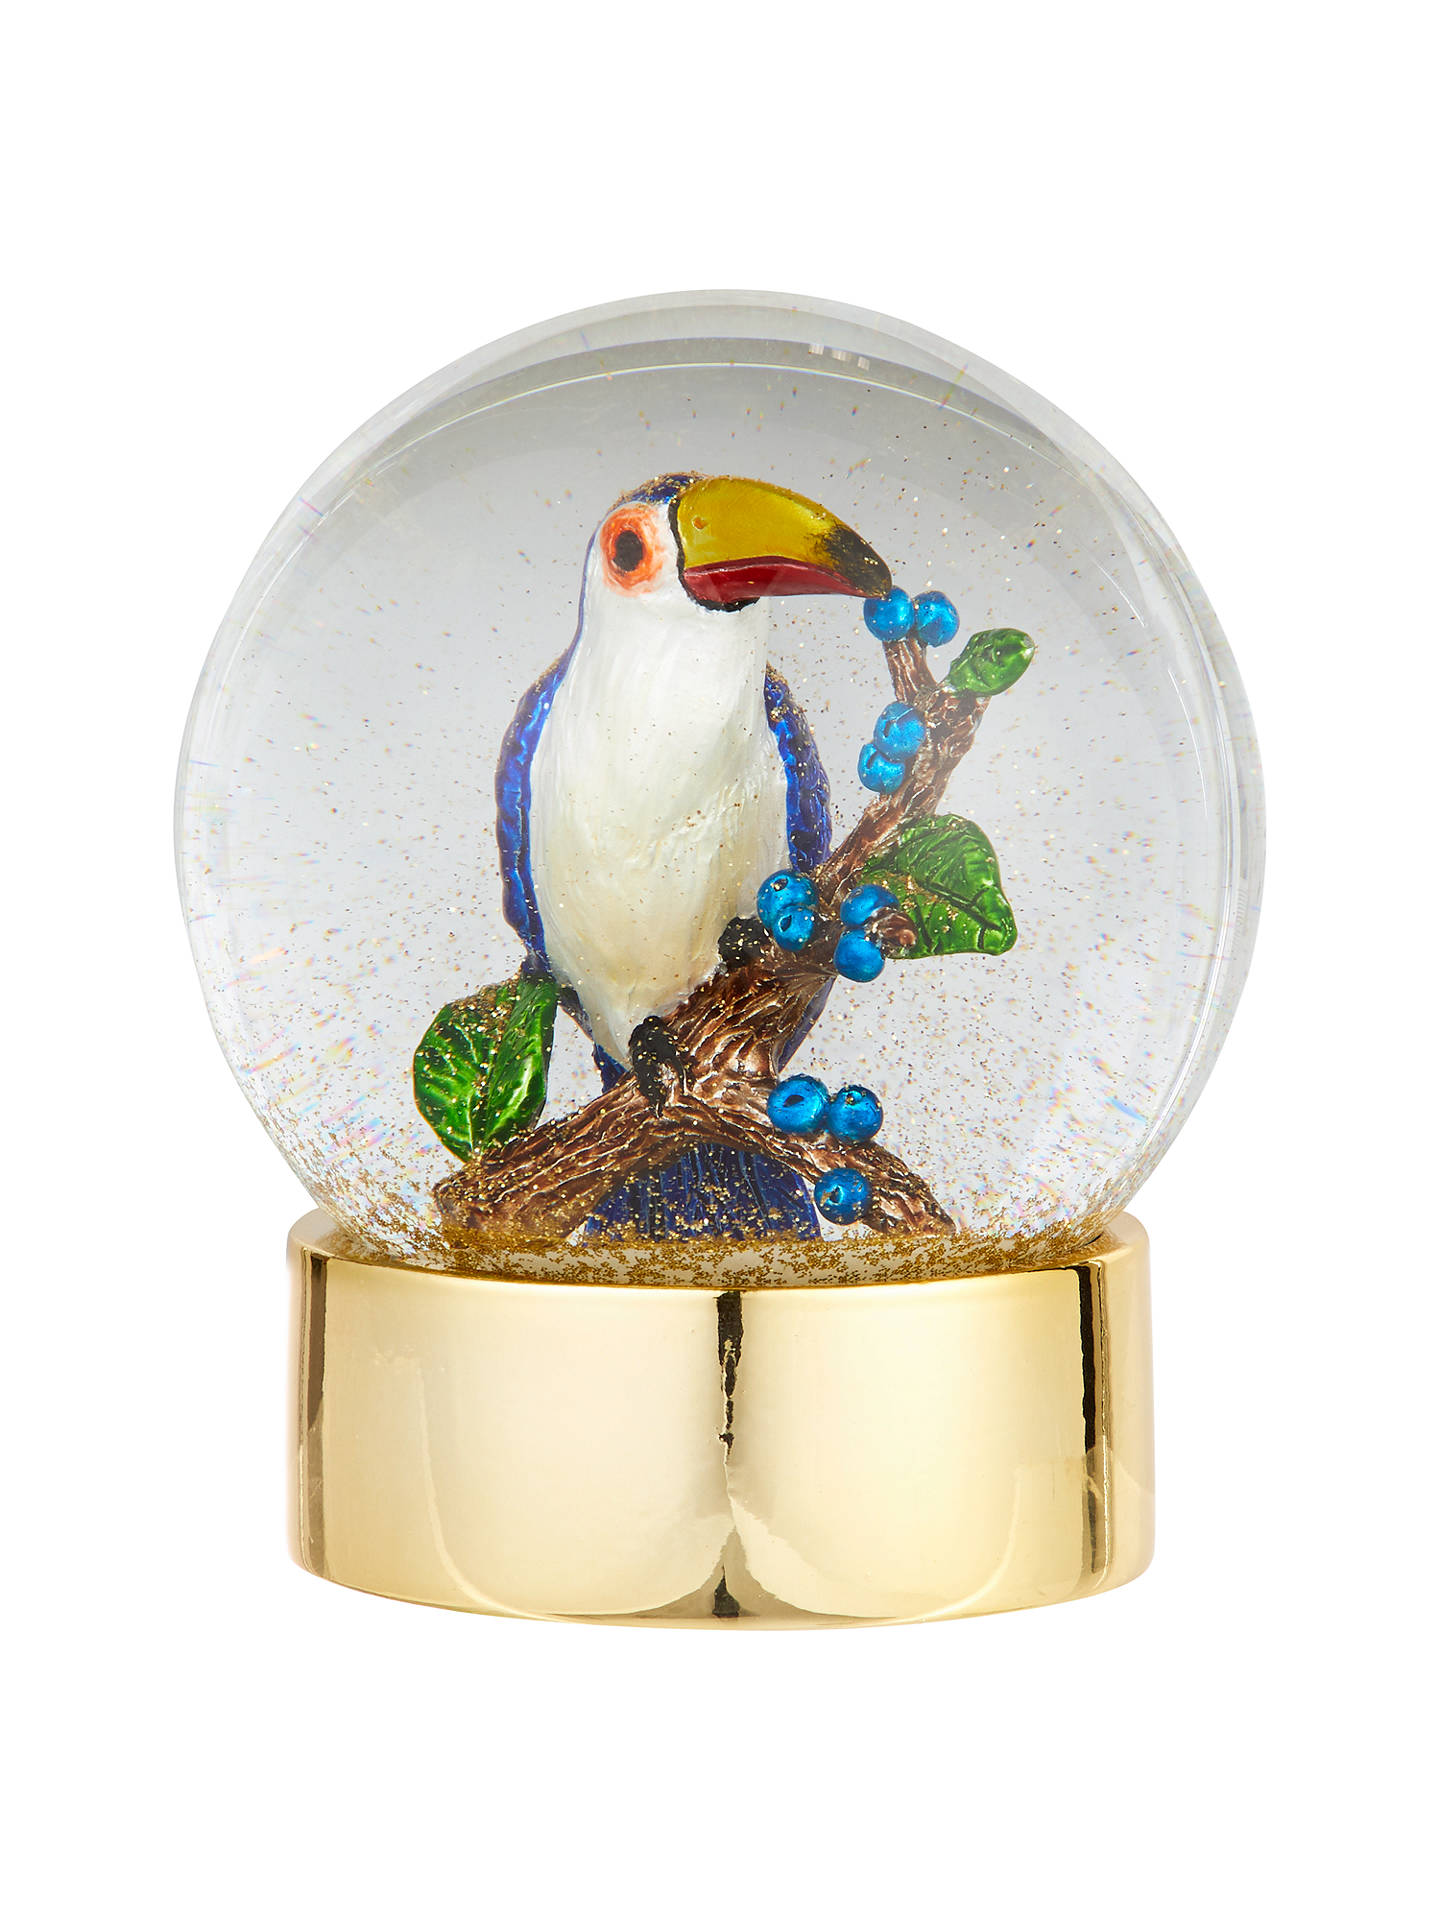 BuyJohn Lewis & Partners Emerald Toucan Snowglobe Online at johnlewis.com